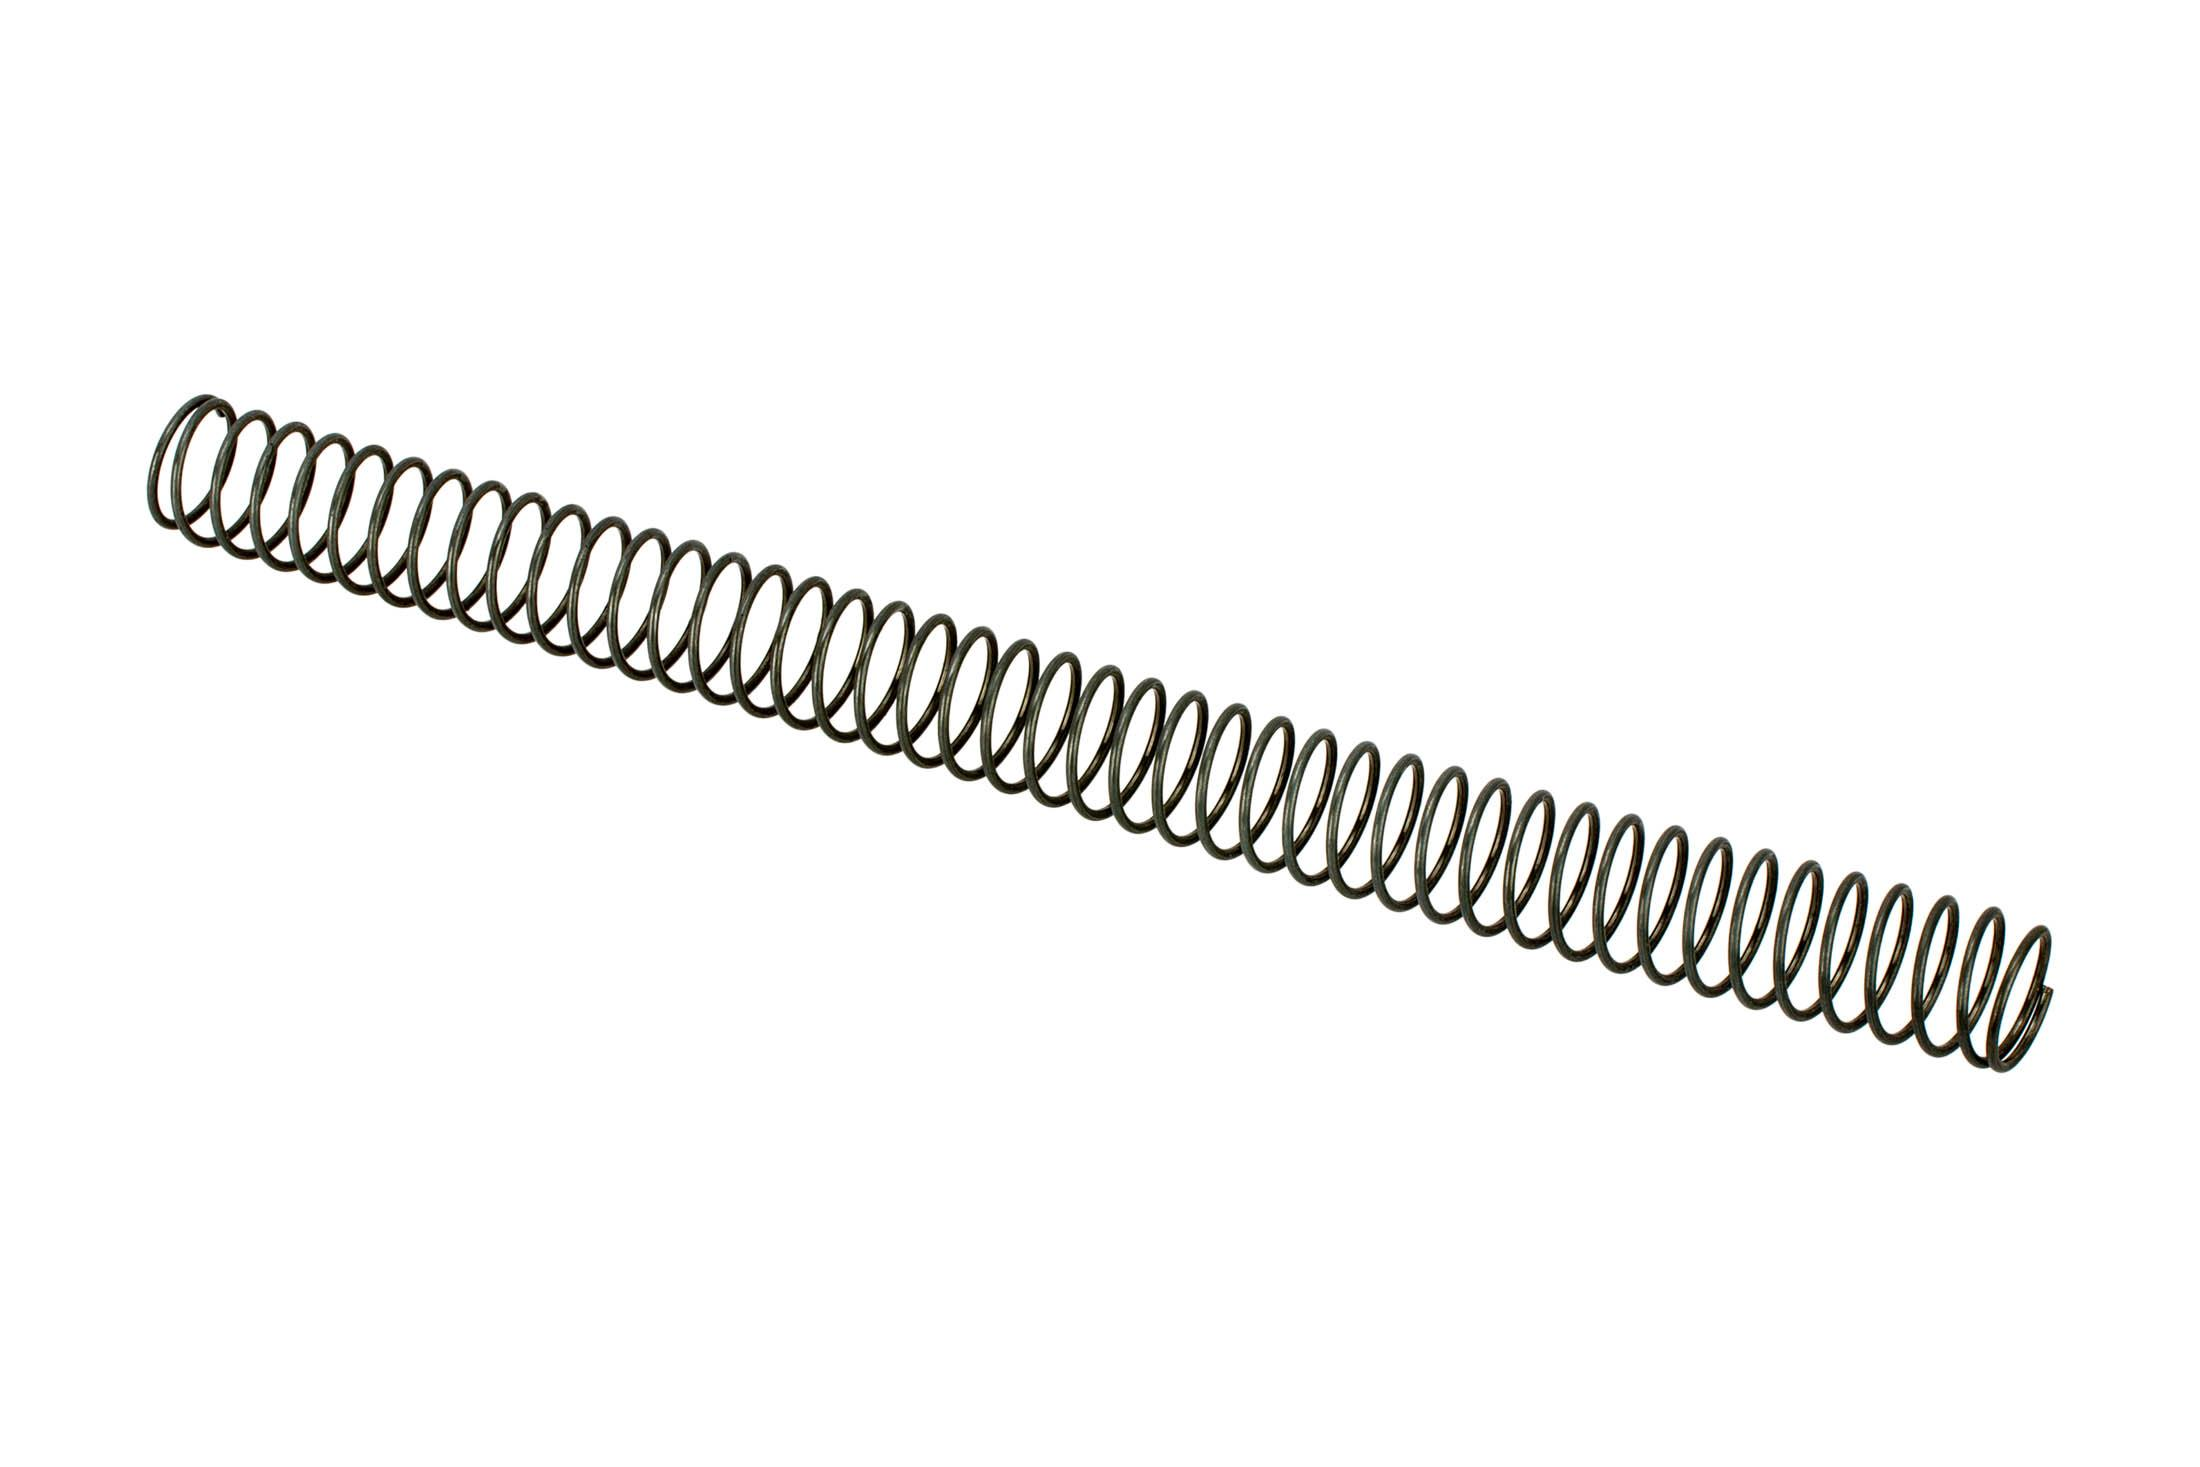 Expo Arms A2 rifle length buffer spring is a high quality mil-spec buffer spring made in the USA.